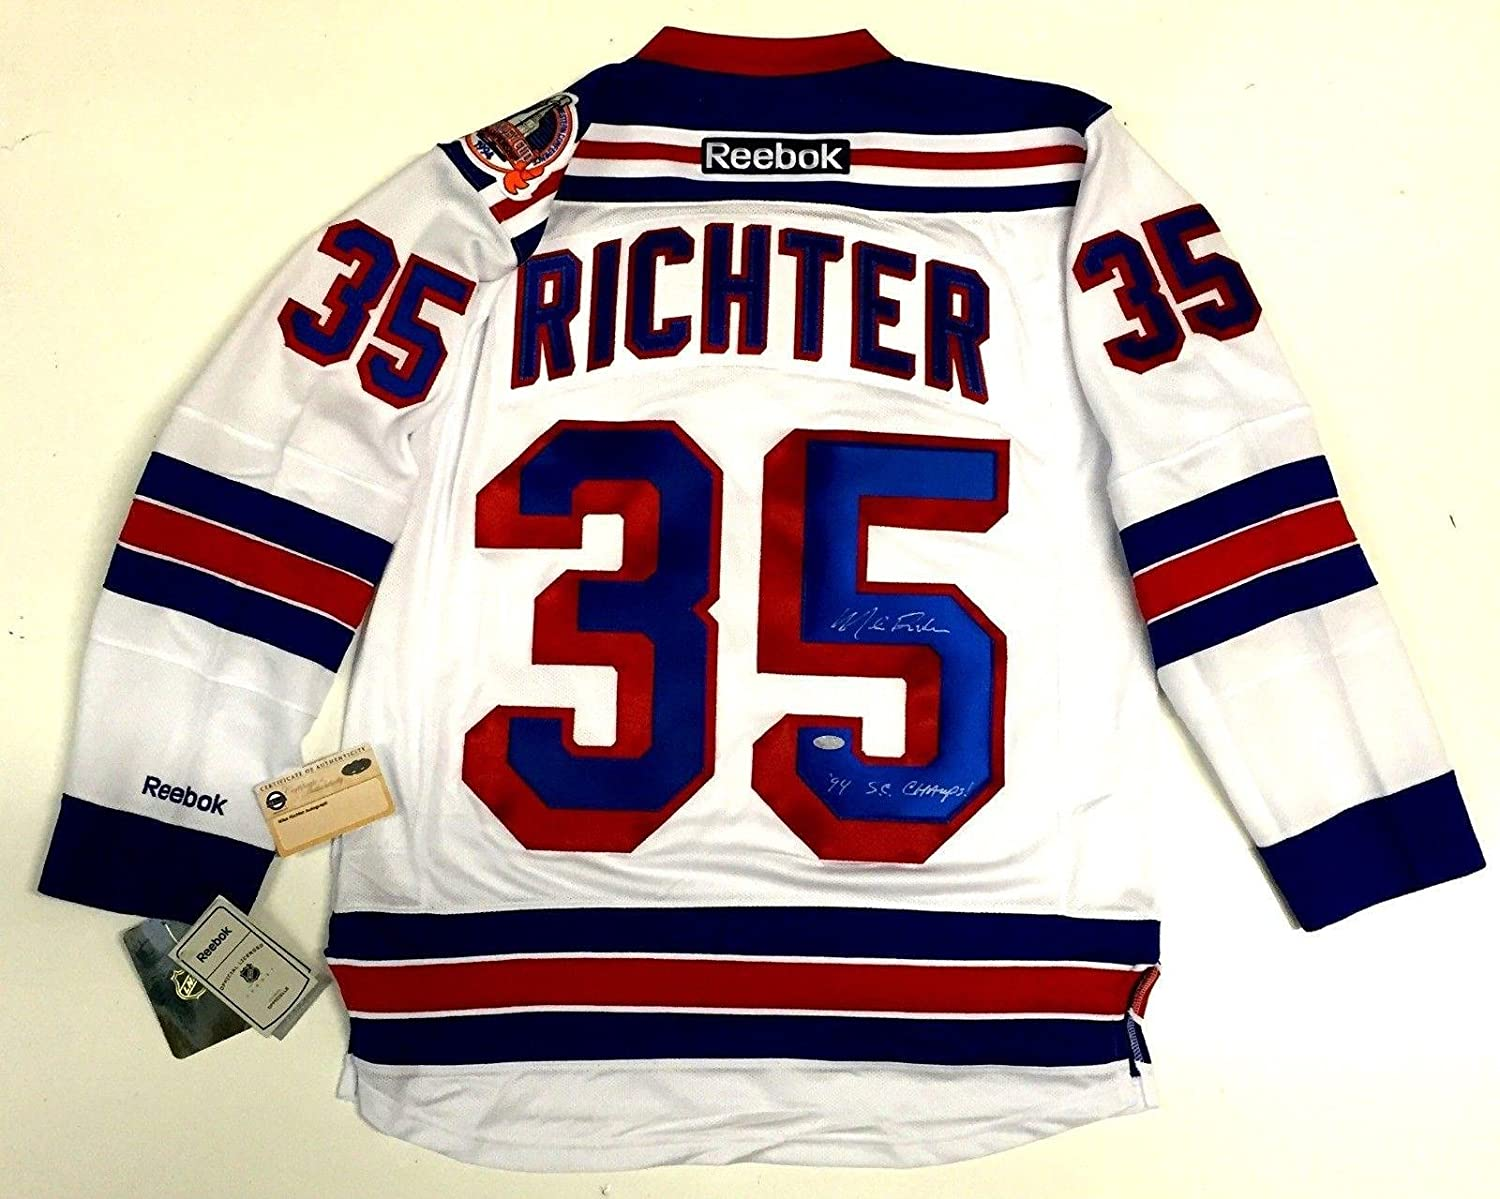 612544047f2 Autographed Mike Richter Jersey - Reebok 1994 Stanley Cup Coa - Steiner  Sports Certified at Amazon s Sports Collectibles Store